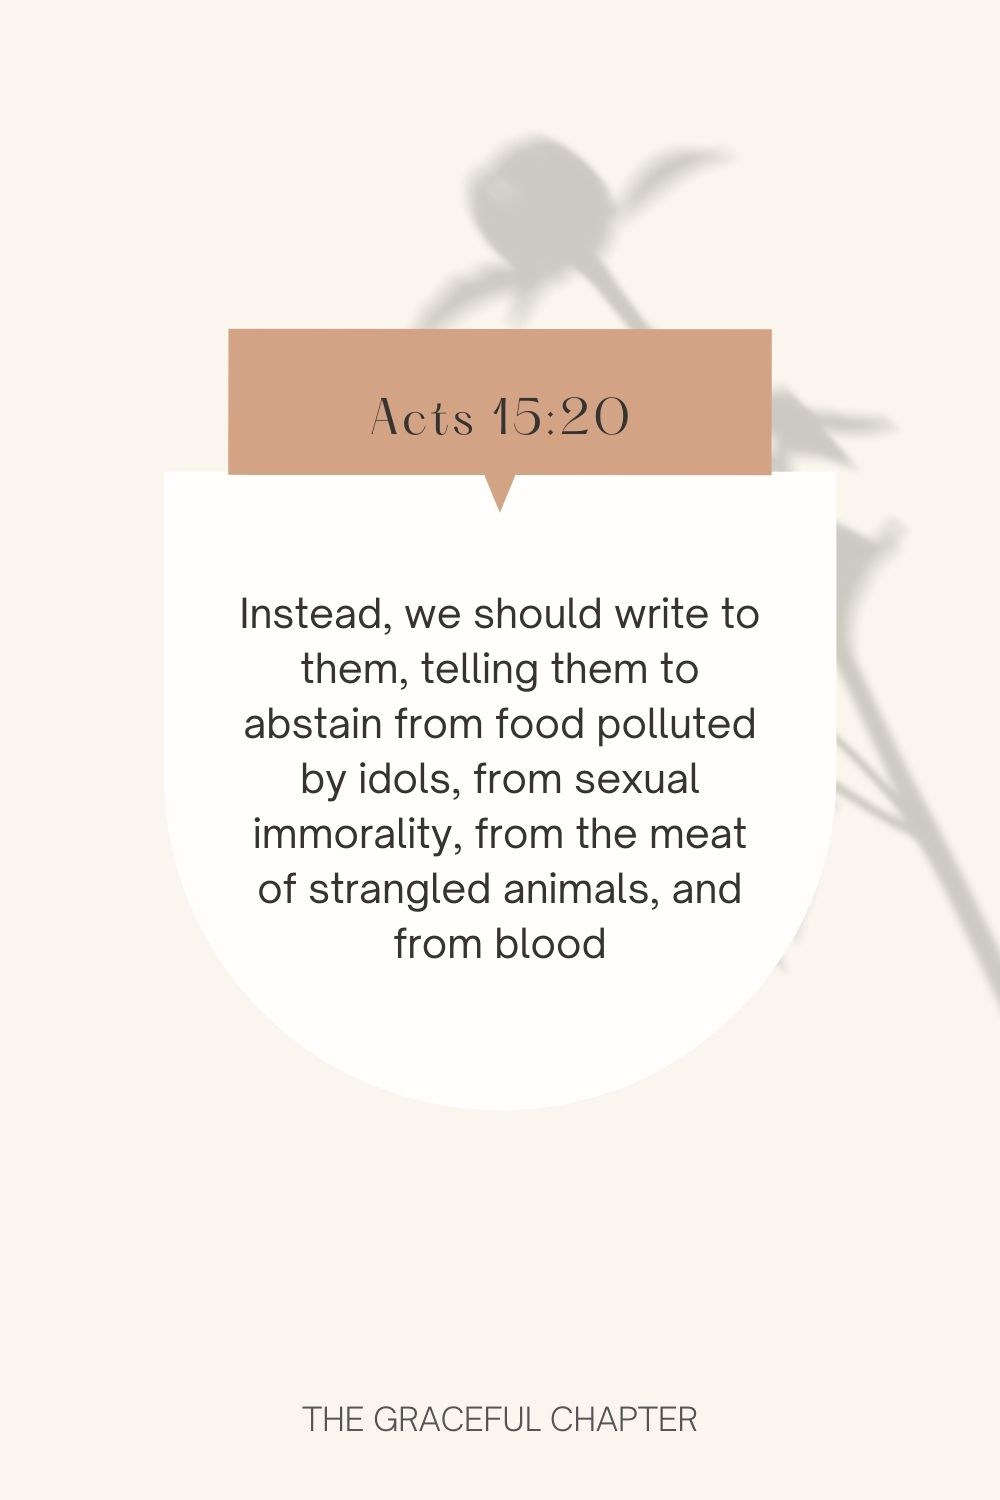 Instead, we should write to them, telling them to abstain from food polluted by idols, from sexual immorality, from the meat of strangled animals, and from blood.  Acts 15:20